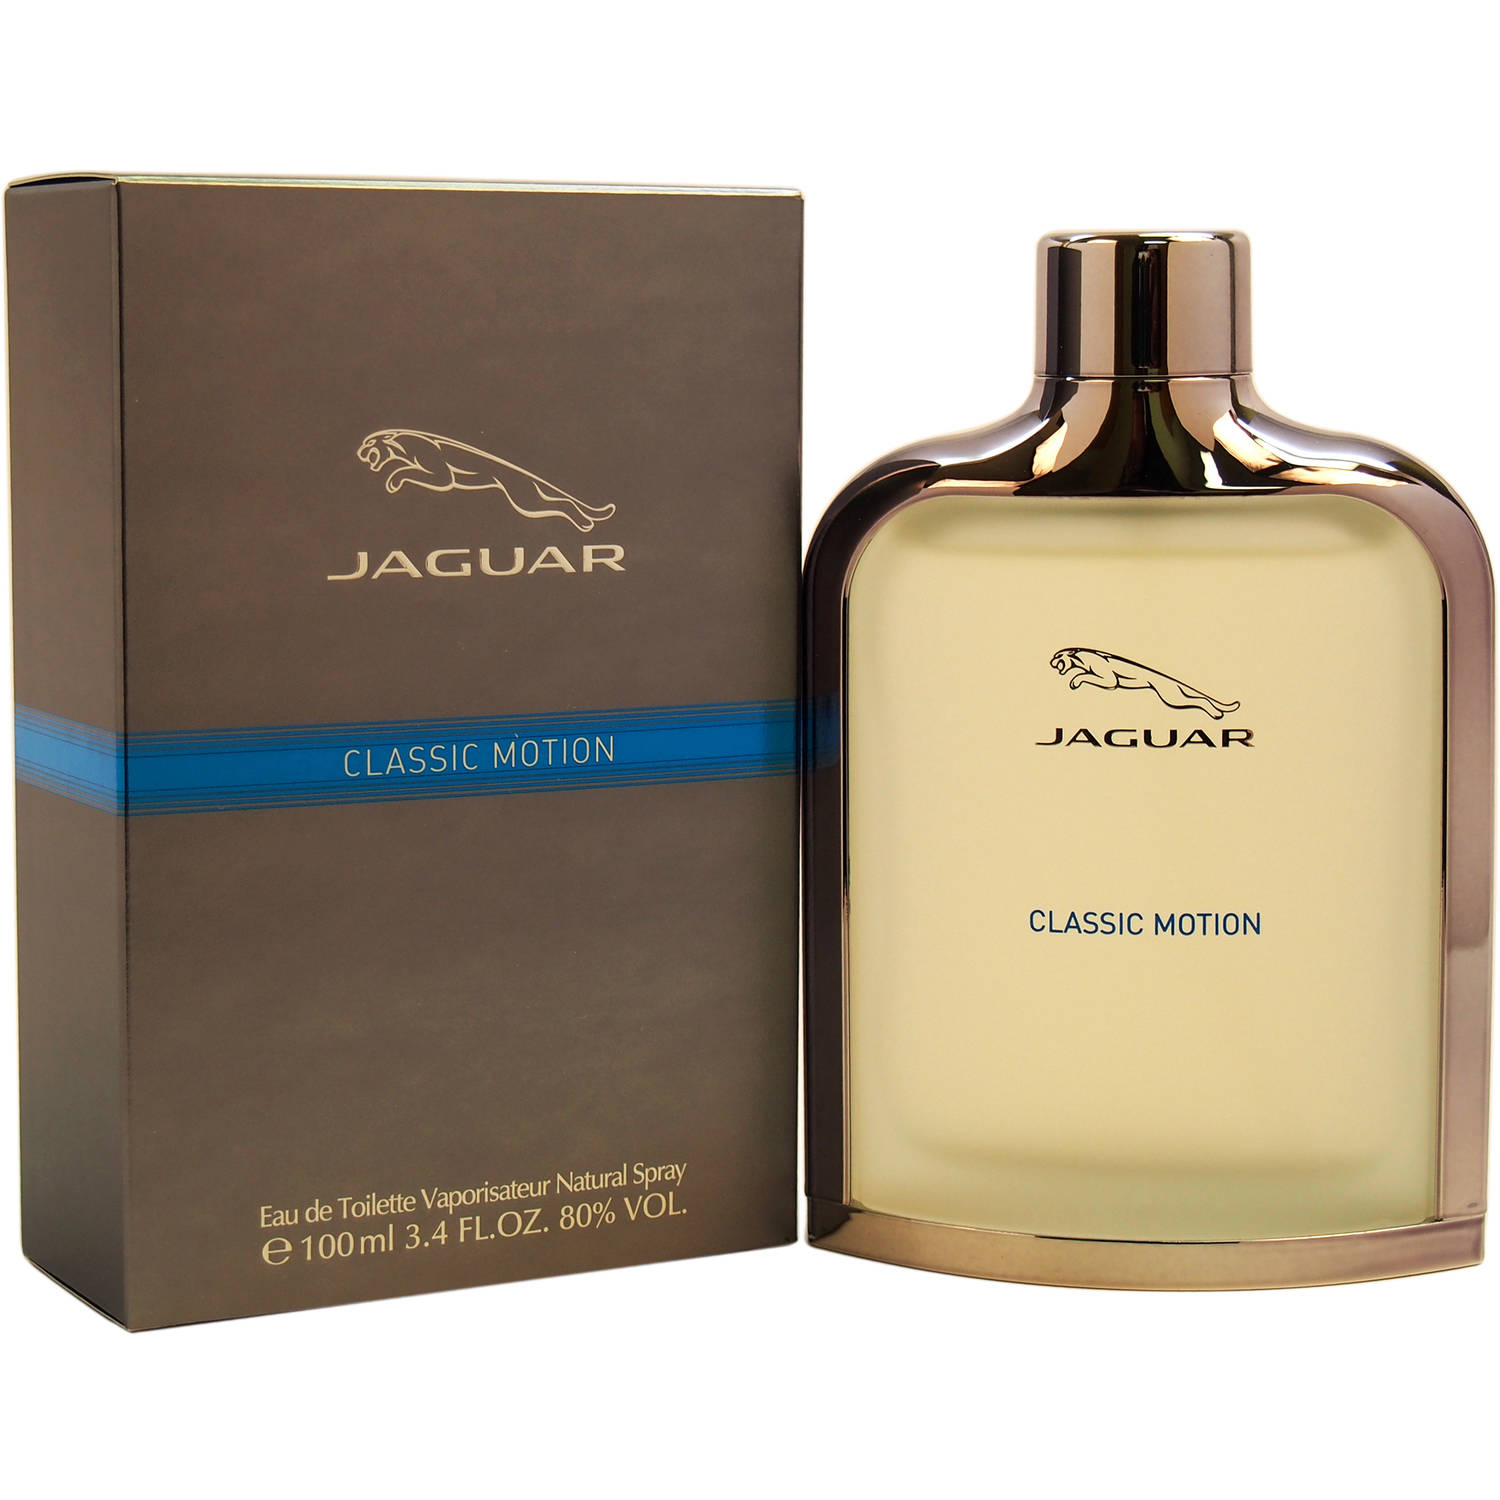 Jaguar Classic Motion Men's EDT Spray, 3.4 fl oz